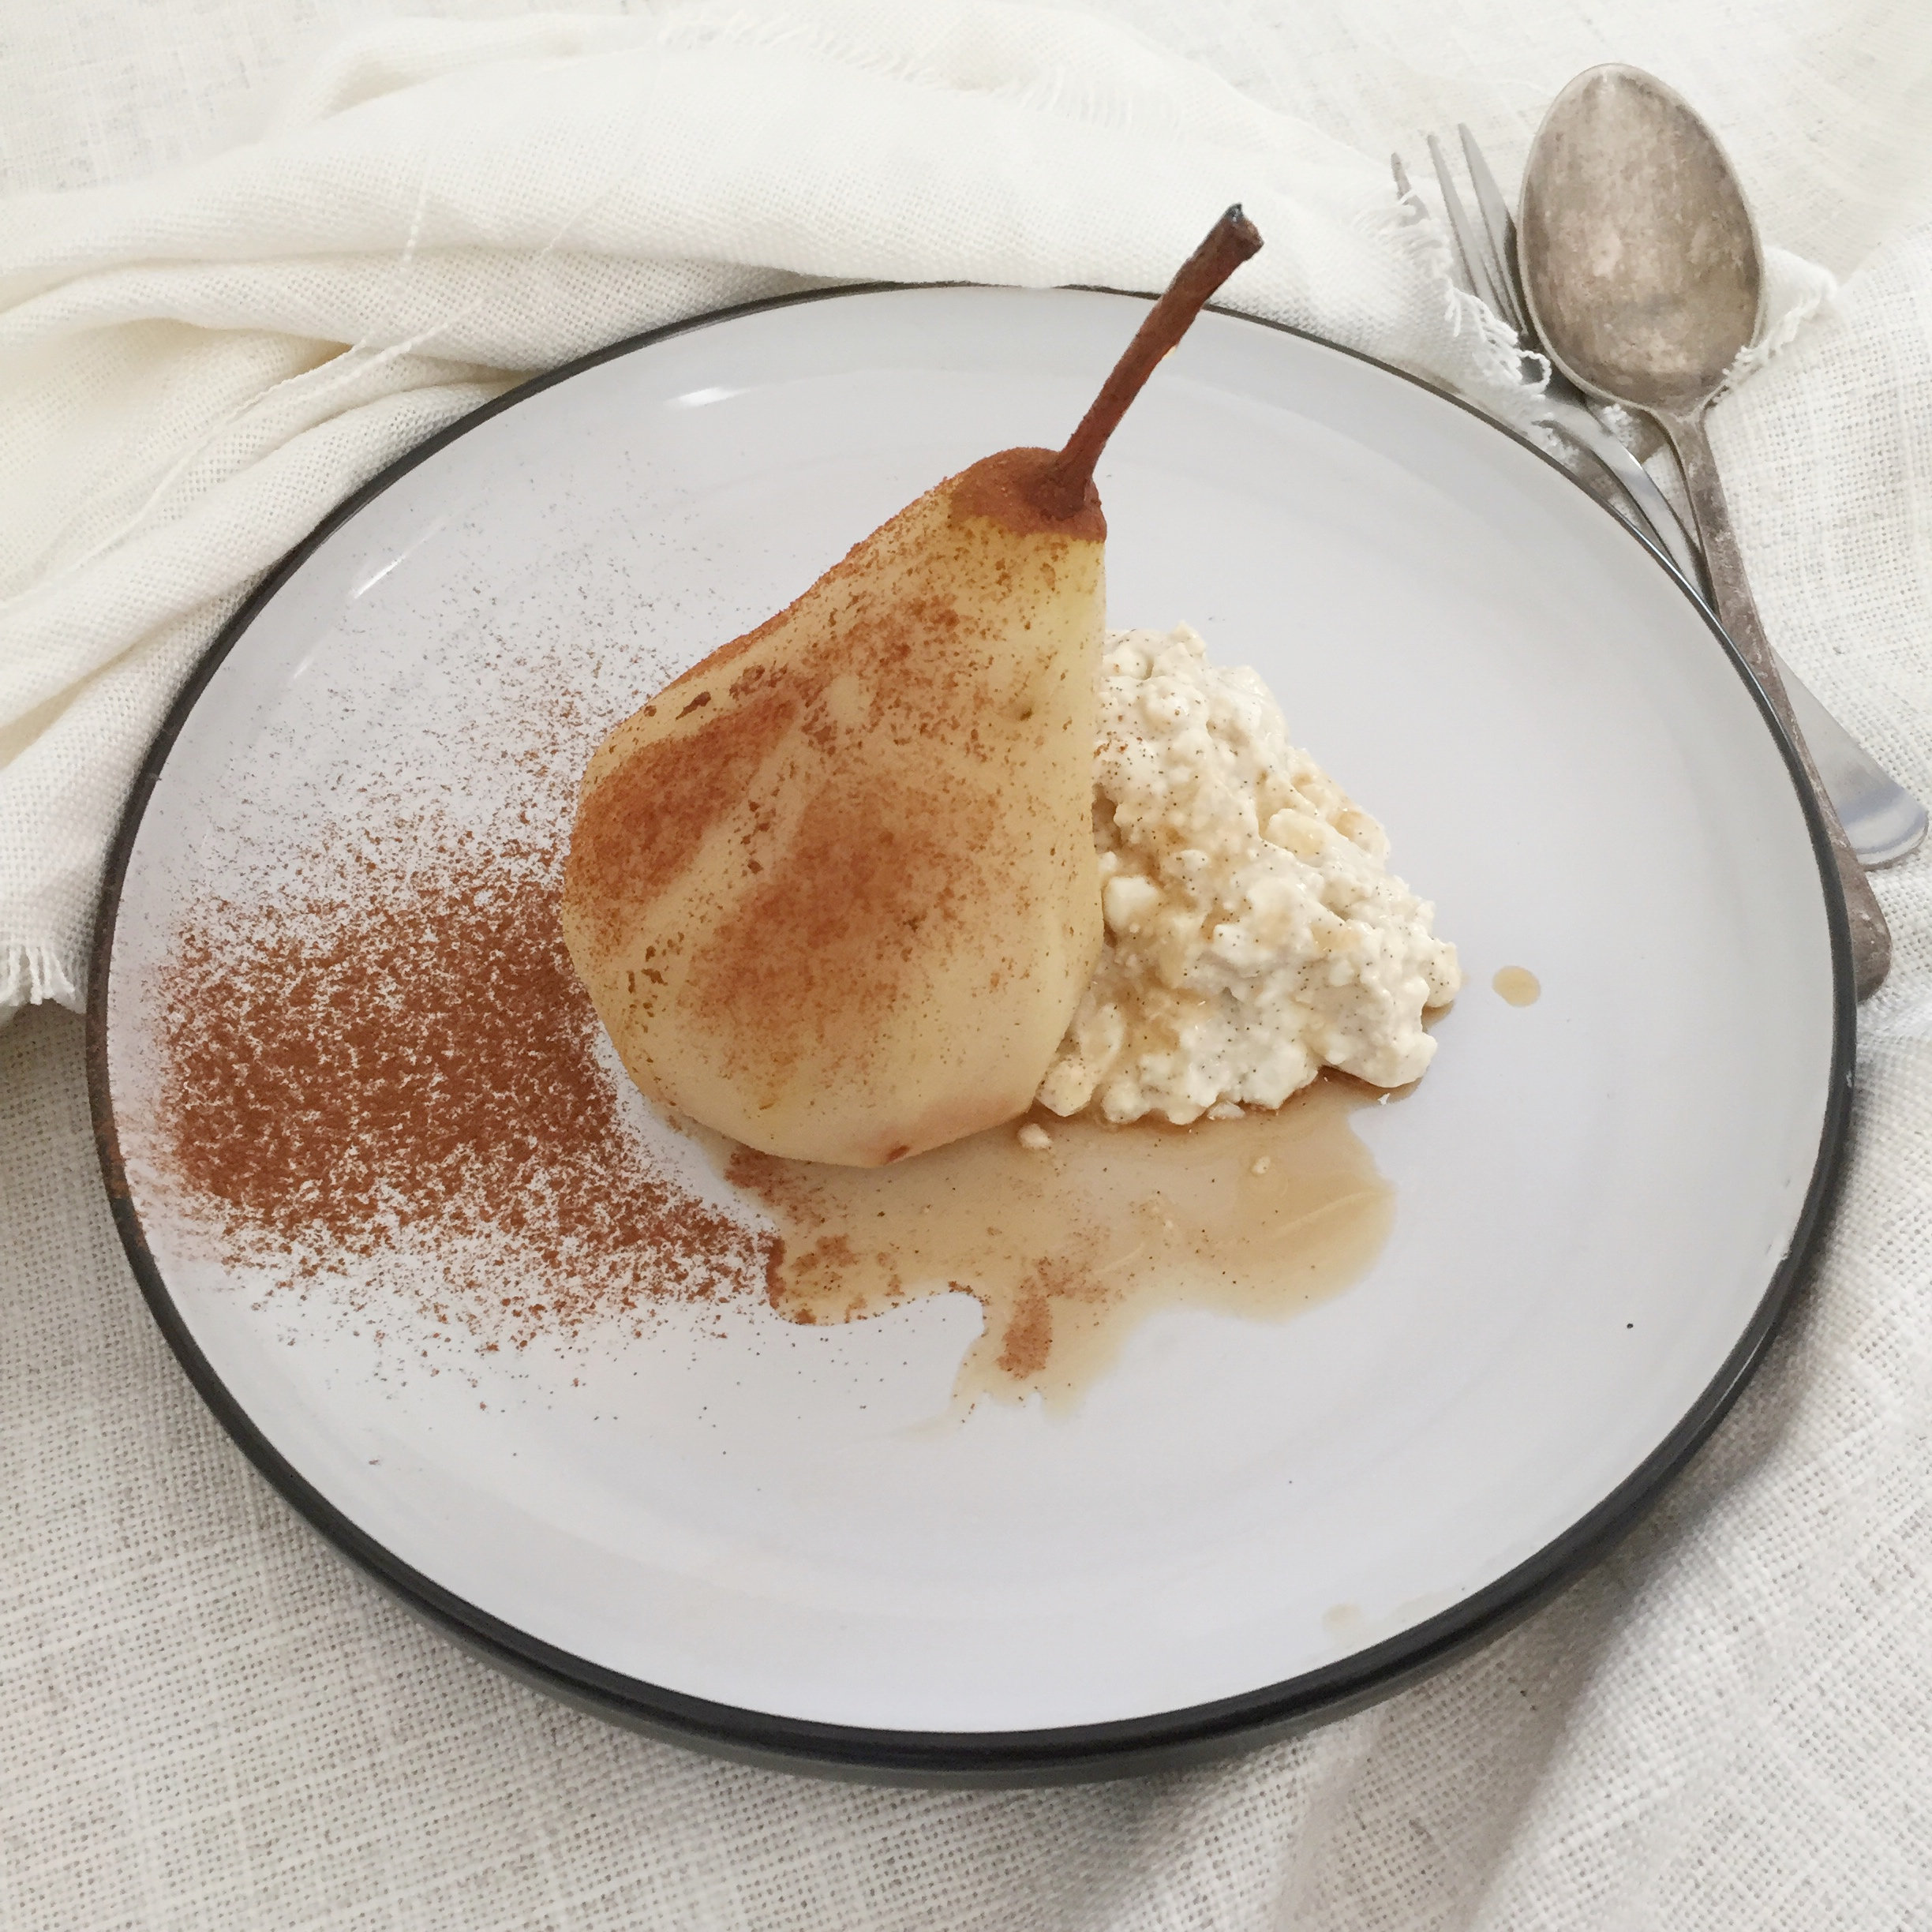 http://www.thehealthyjourney.com.au/maple-and-cinnamon-poached-pears-with-vanilla-whipped-ricotta/